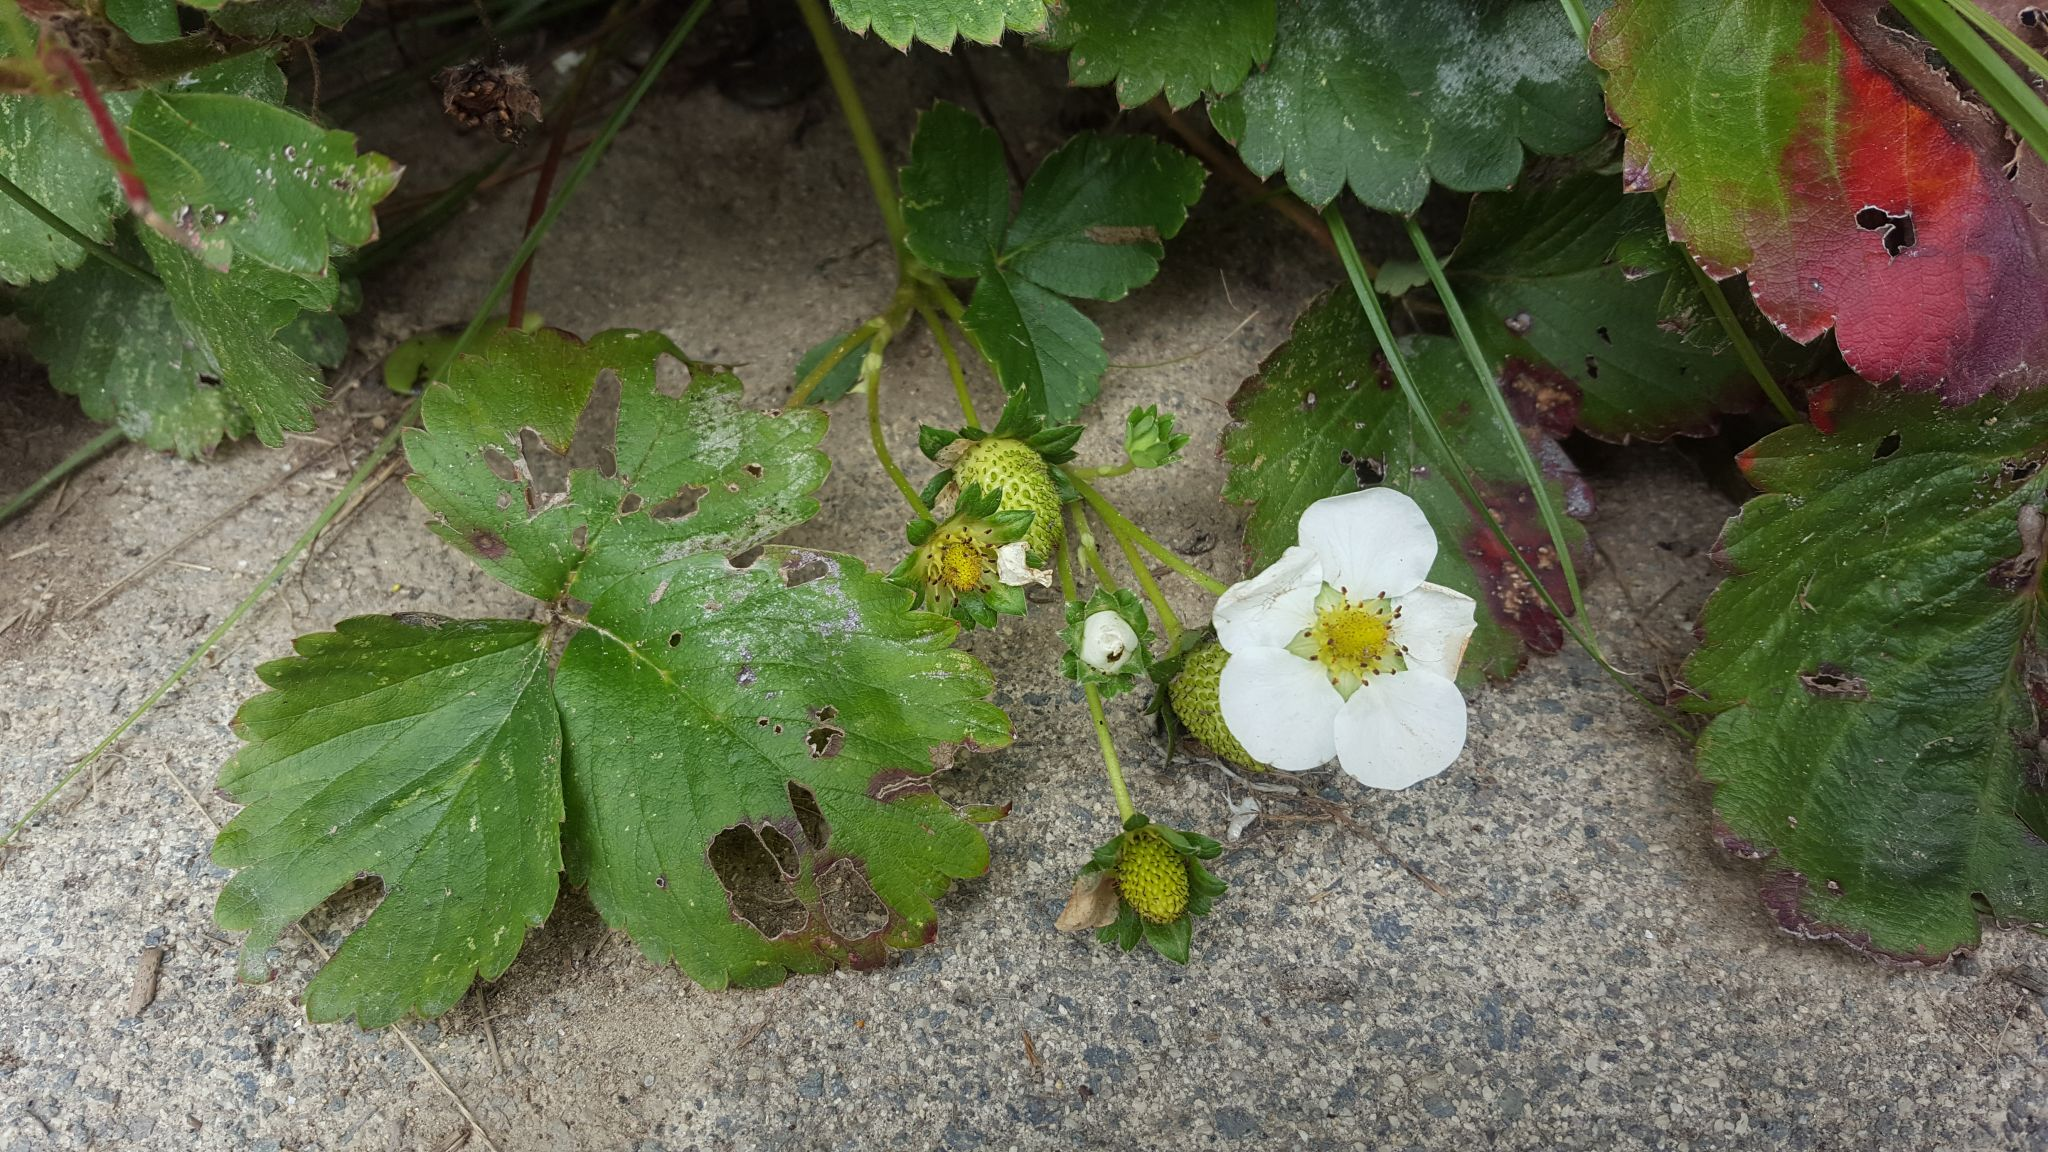 Nice to see that we can still harvest the odd strawberries